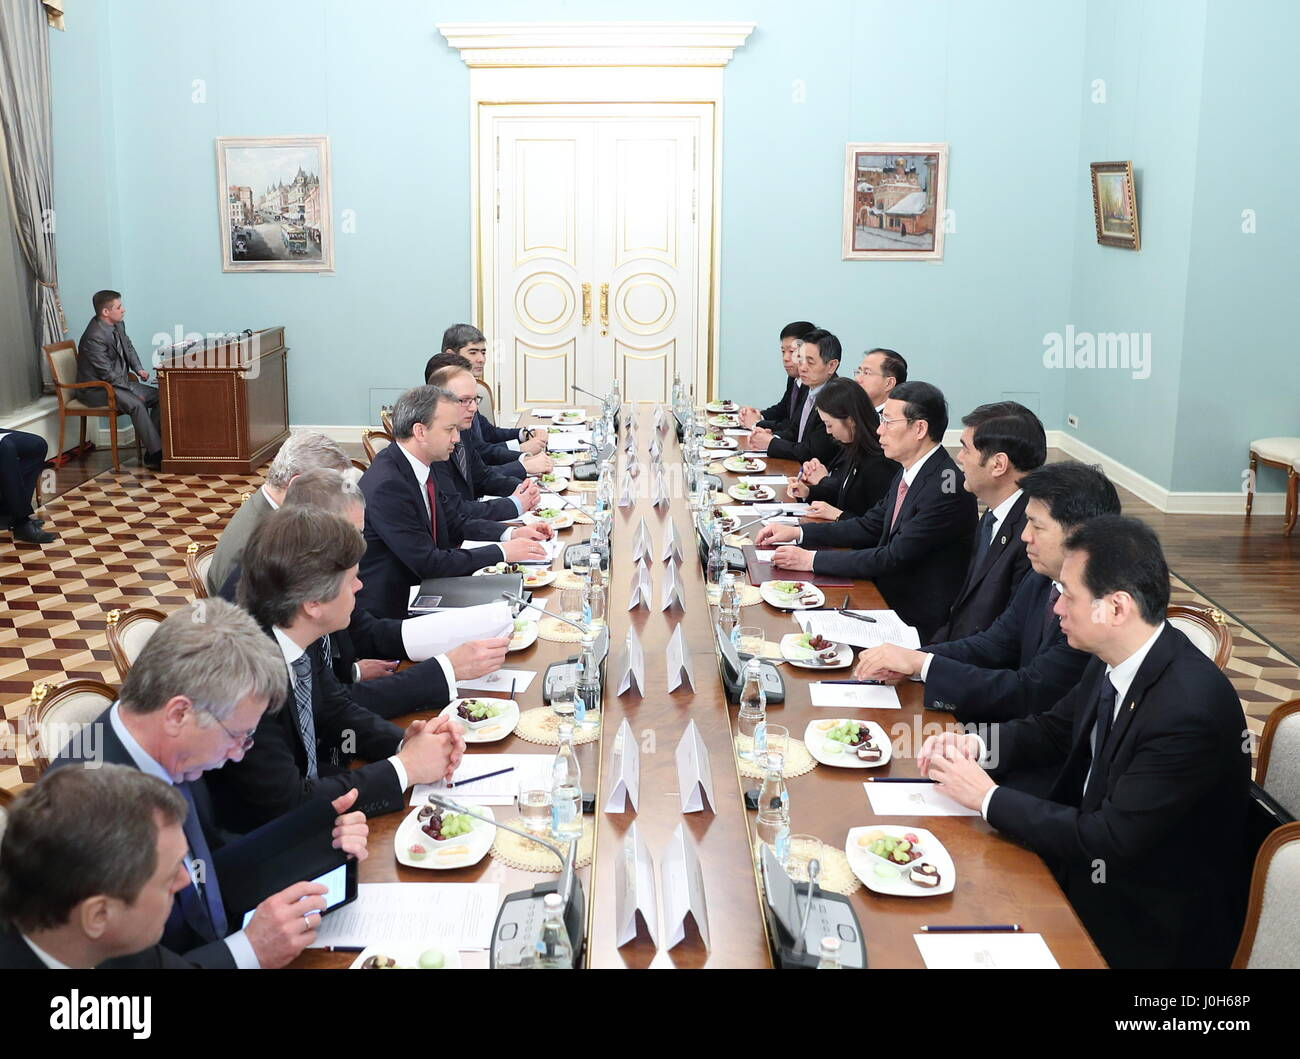 Moscow, Russia. 12th Apr, 2017. Chinese Vice Premier Zhang Gaoli(4th R) and his Russian counterpart Arkady Dvorkovich(6th L) talks during the meeting of the China-Russia Energy Cooperation Committee in Moscow, Russia, April 12, 2017. Credit: Pang Xinglei/Xinhua/Alamy Live News Stock Photo